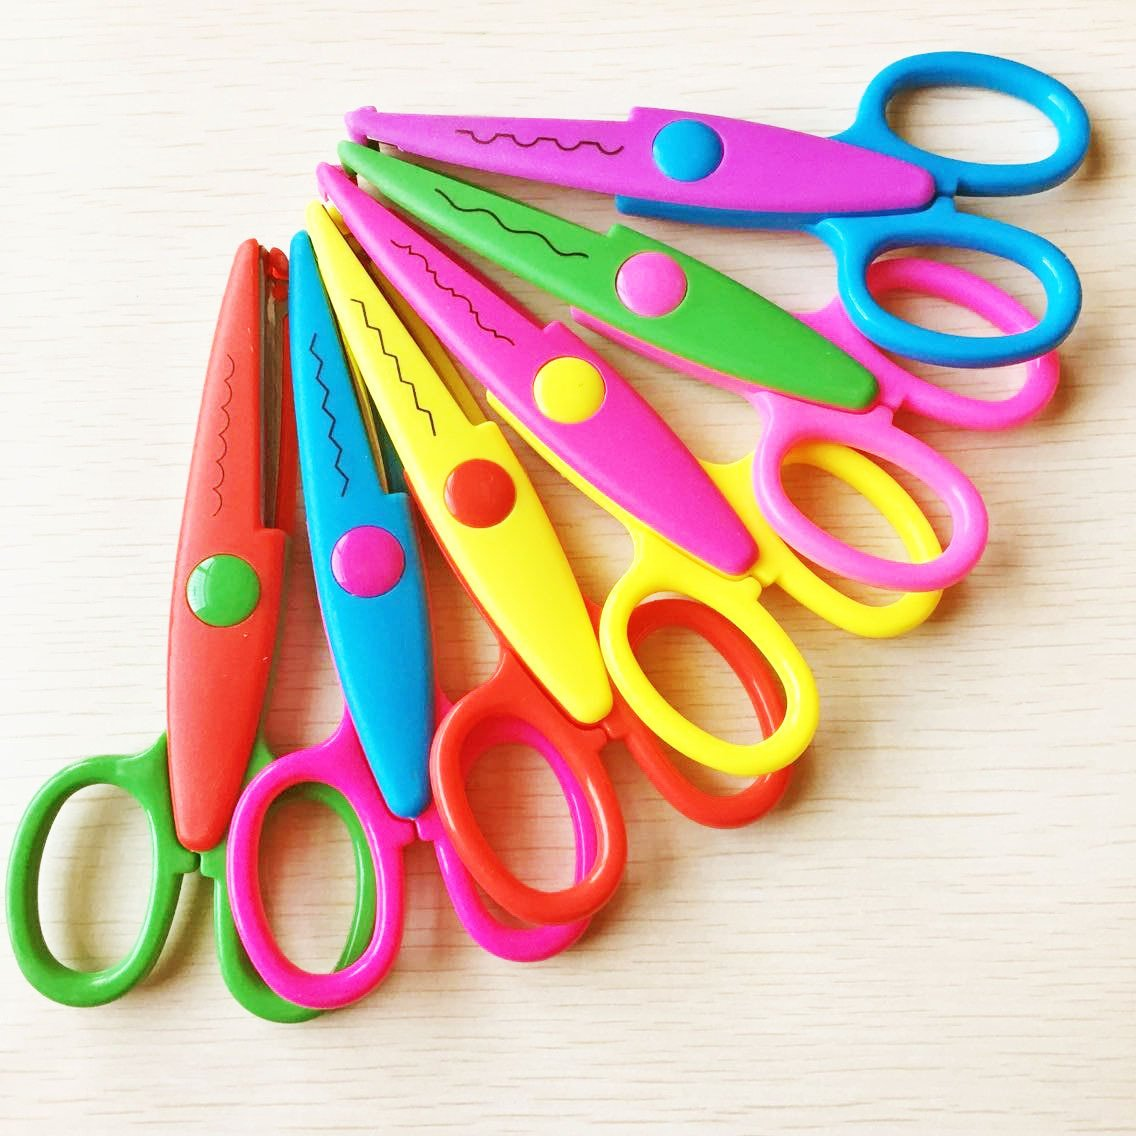 Worldoor New 5 Inch Length DIY Craft Scissors Creative Scissors School Smart Paper Decorative Wave Lace Edge Scissors - Set of 6 - Assorted Colors for scrapbook crafts and Gift Card (Pack of 6 - 5'')